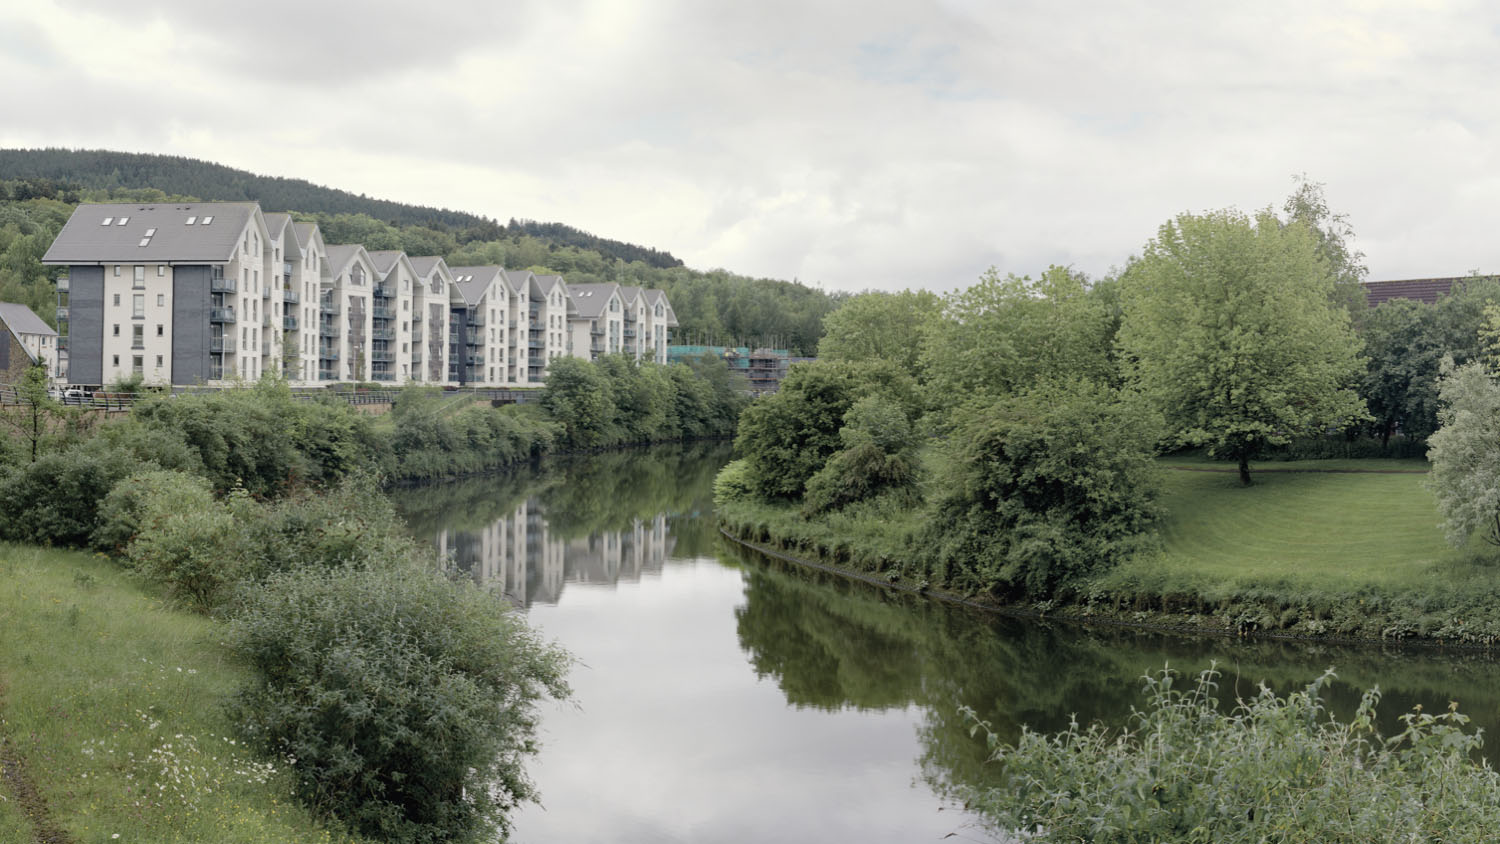 Former copper smelting site. Lower Swansea Valley, Wales 2014